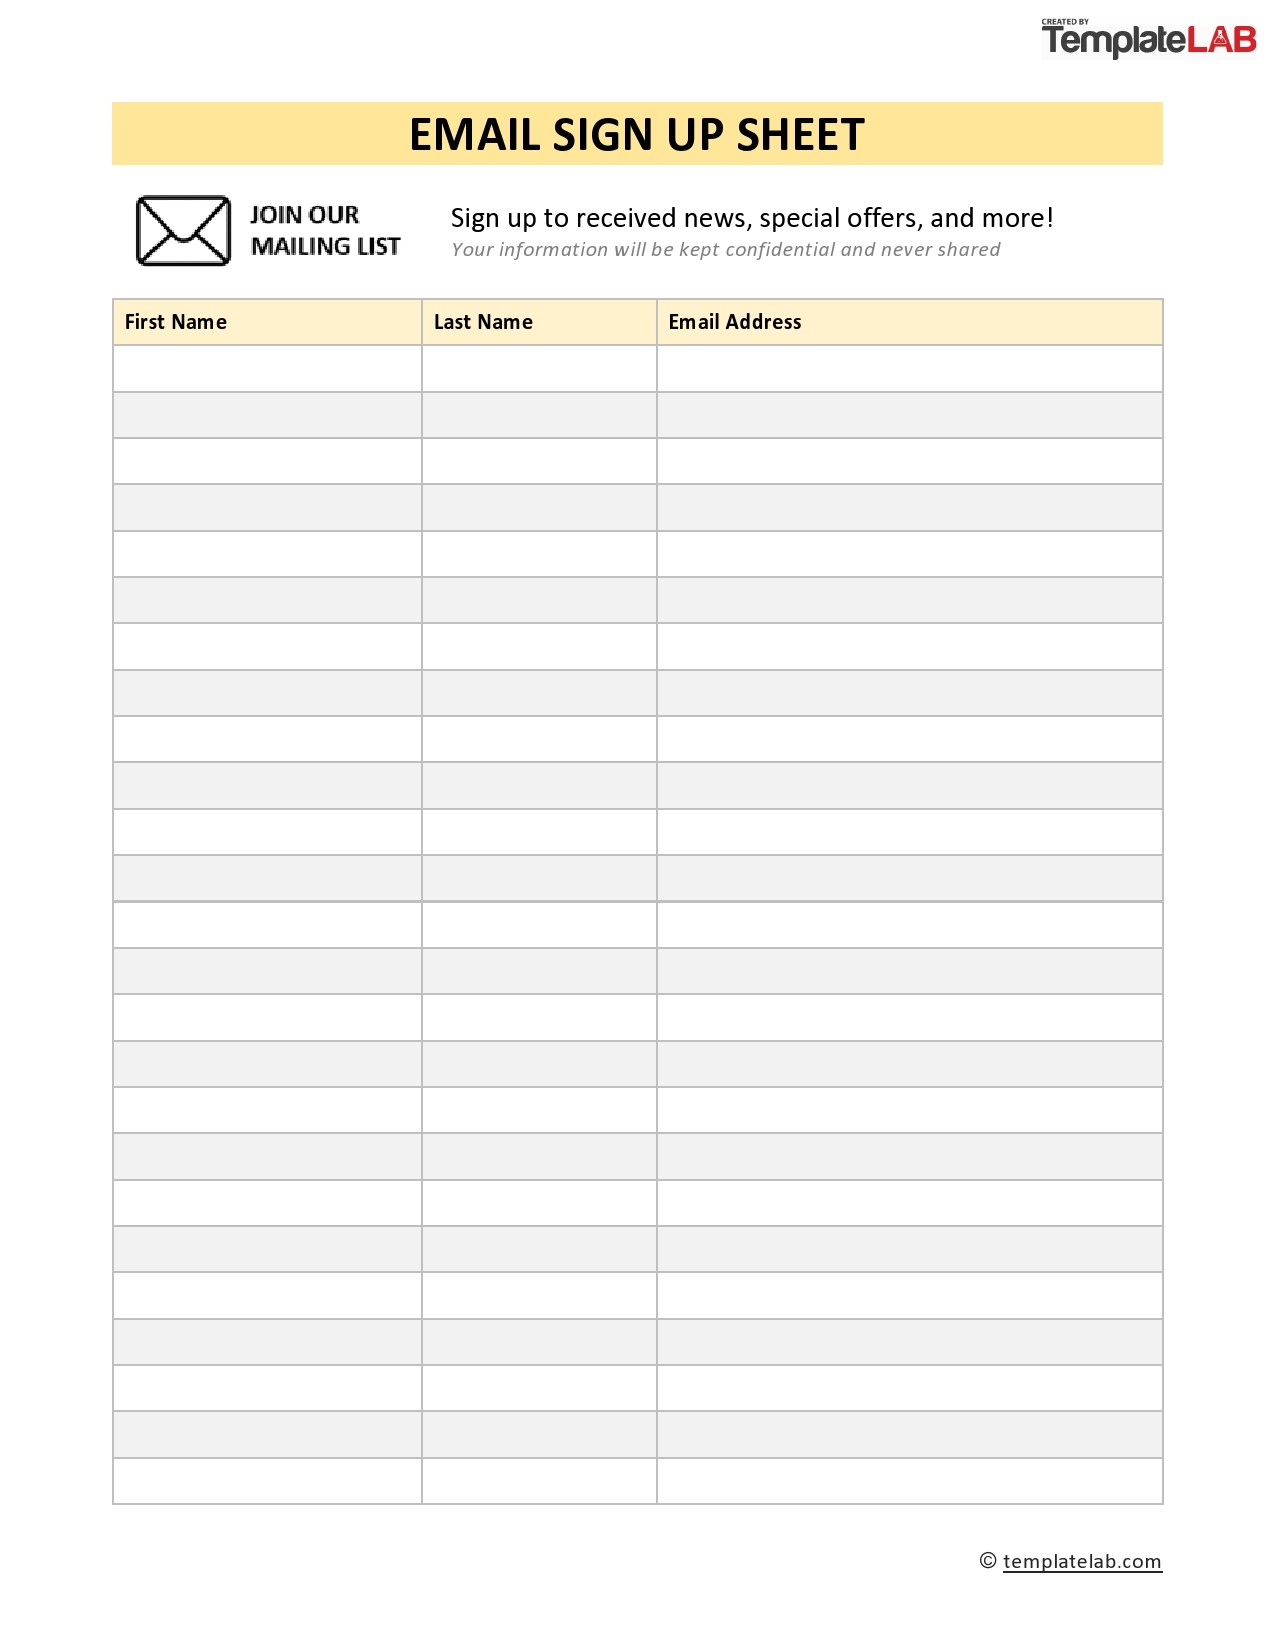 Microsoft Sign Up Sheet Template from templatelab.com